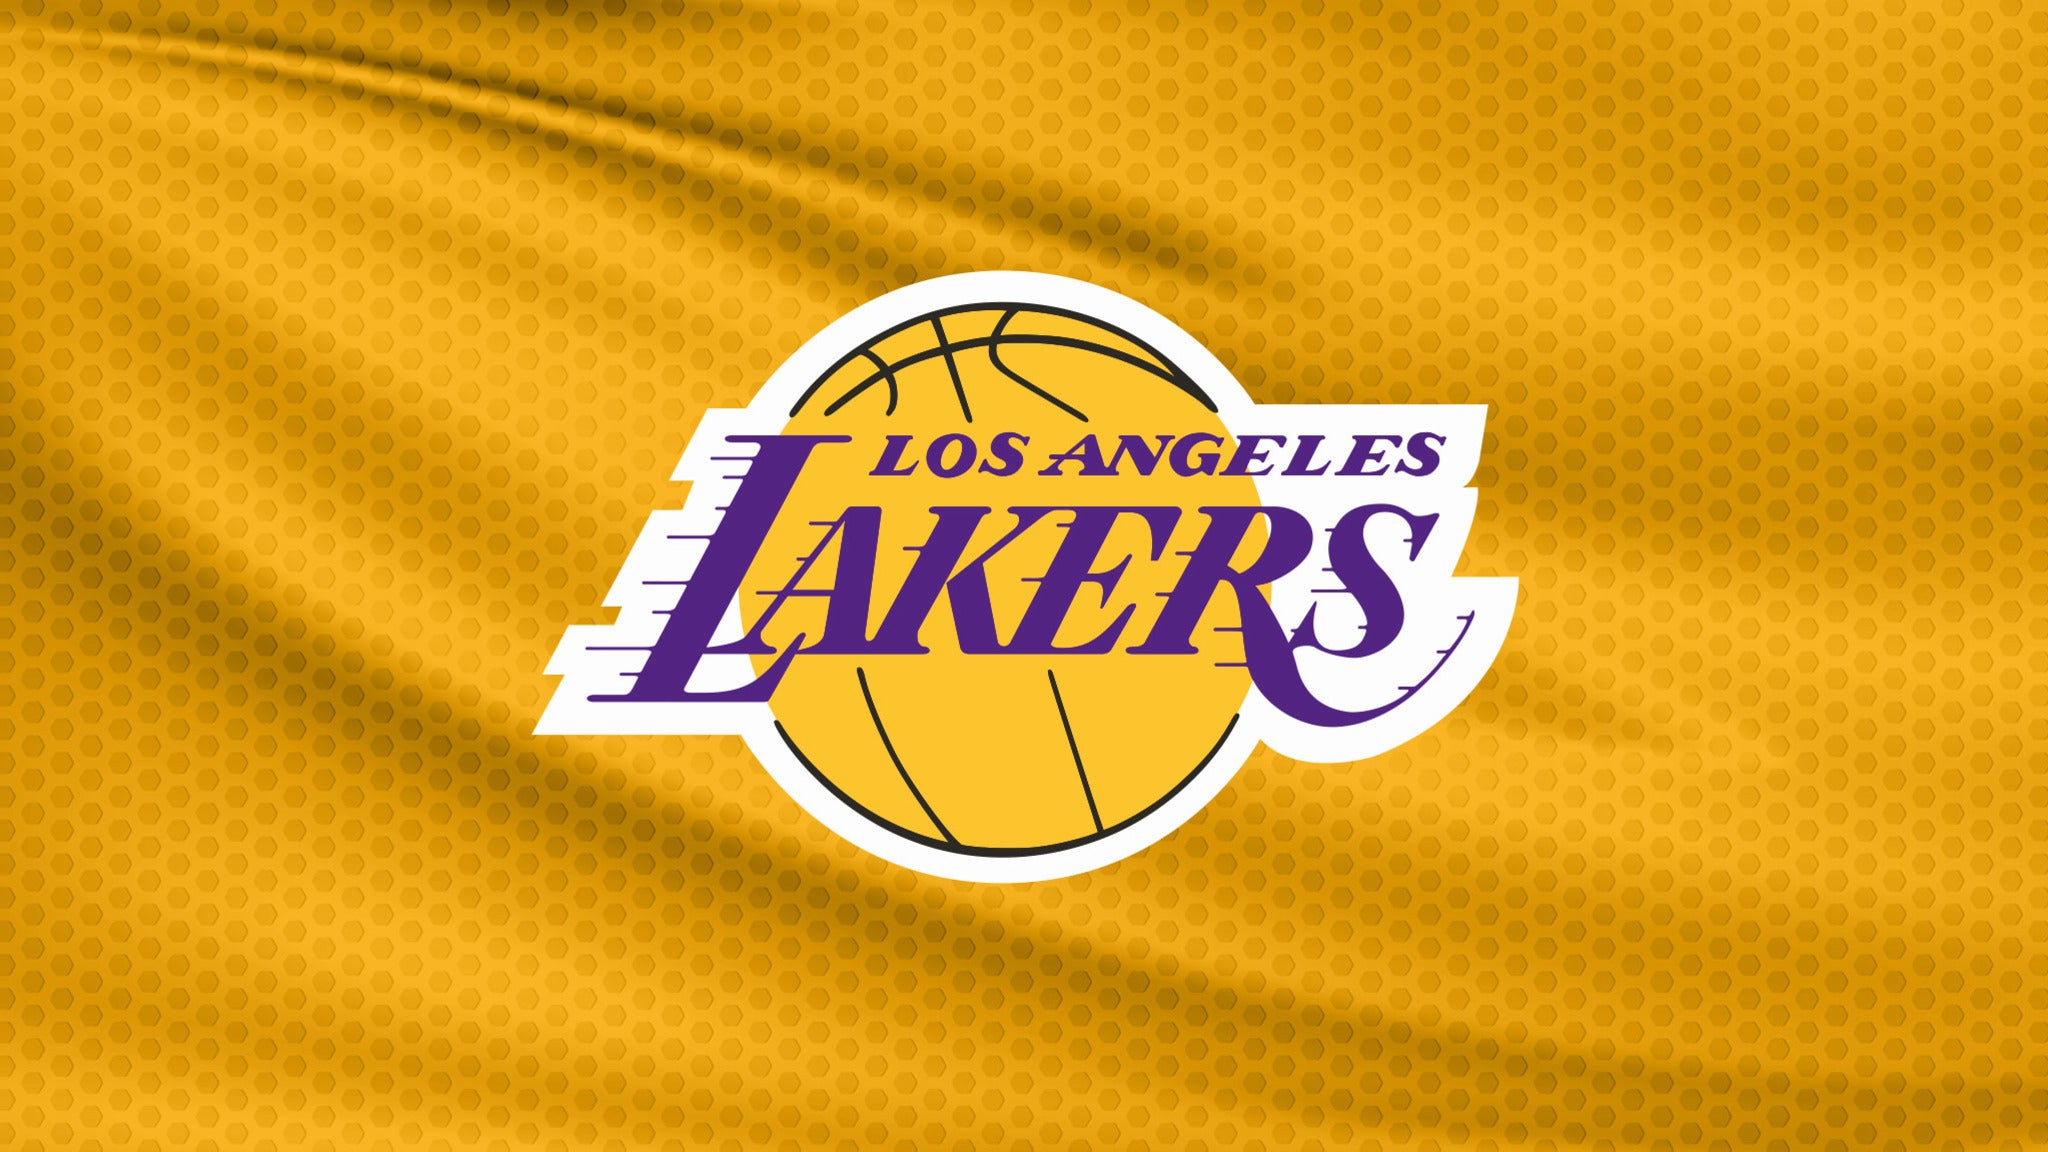 Los Angeles Lakers Tickets 2020 Nba Tickets Schedule Ticketmaster